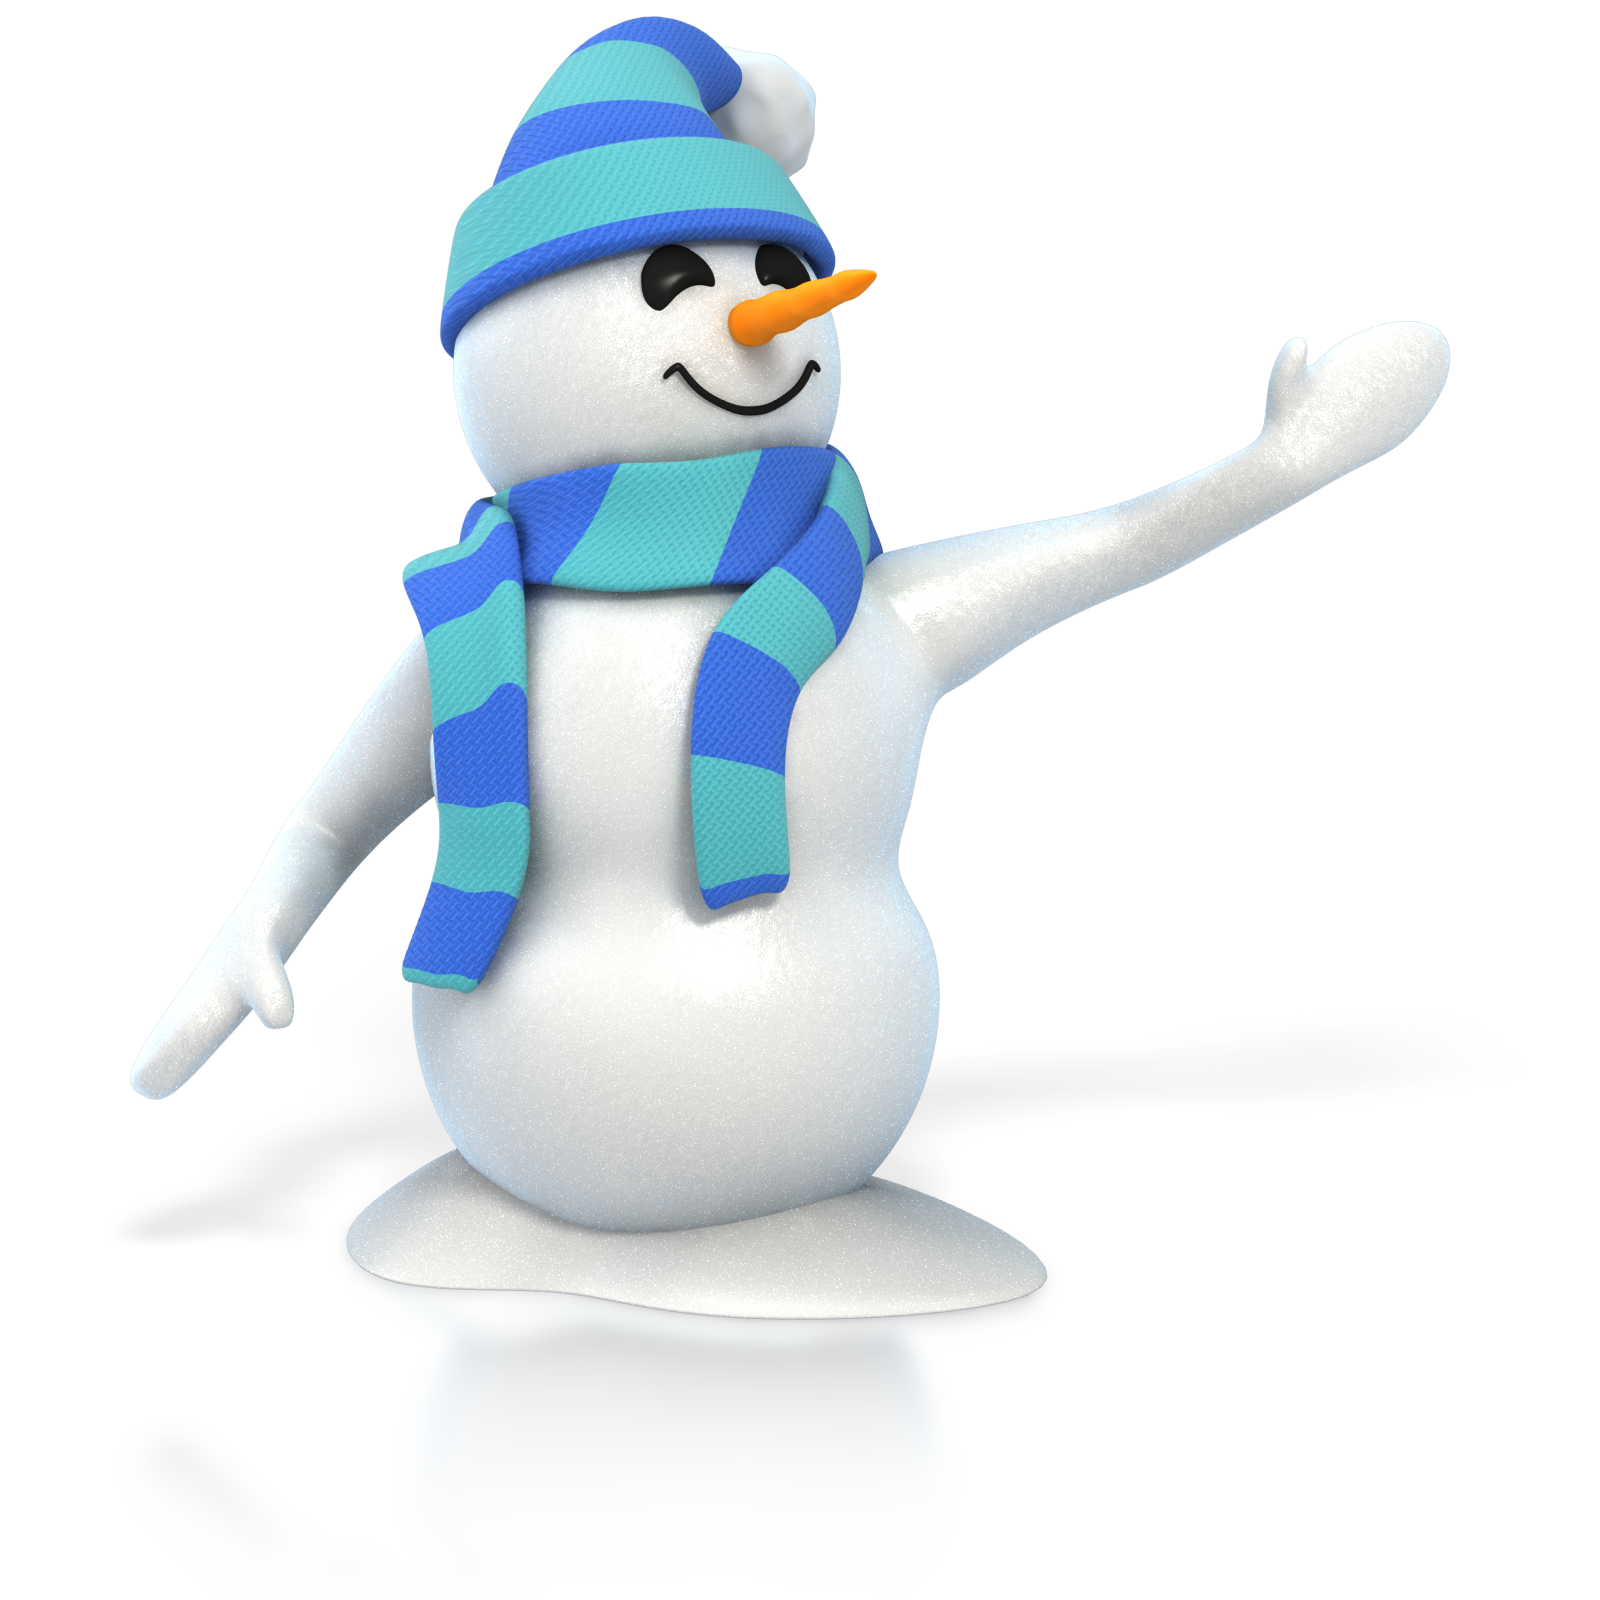 Snowman Png image #30775 - Sn